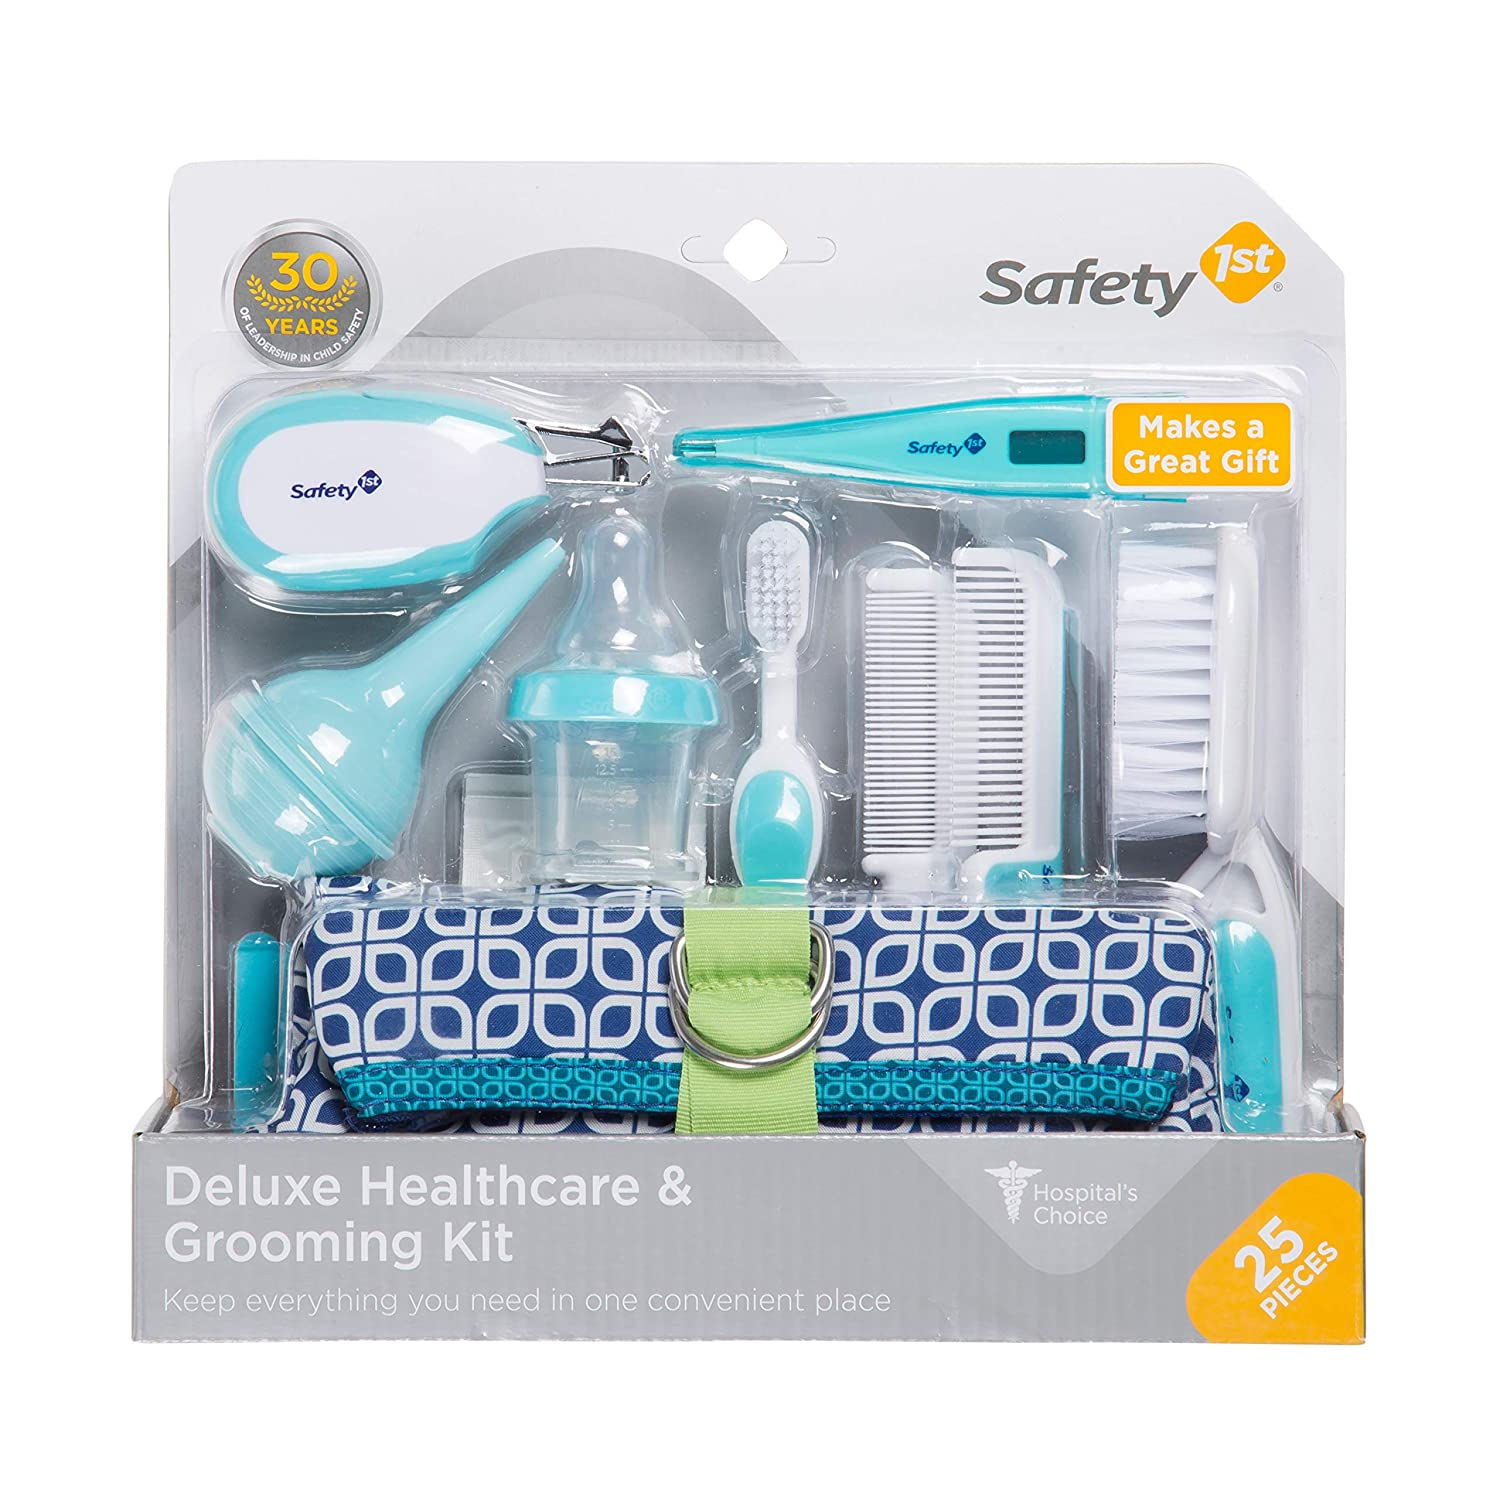 Safety 1st Baby Healthcare Grooming Kit